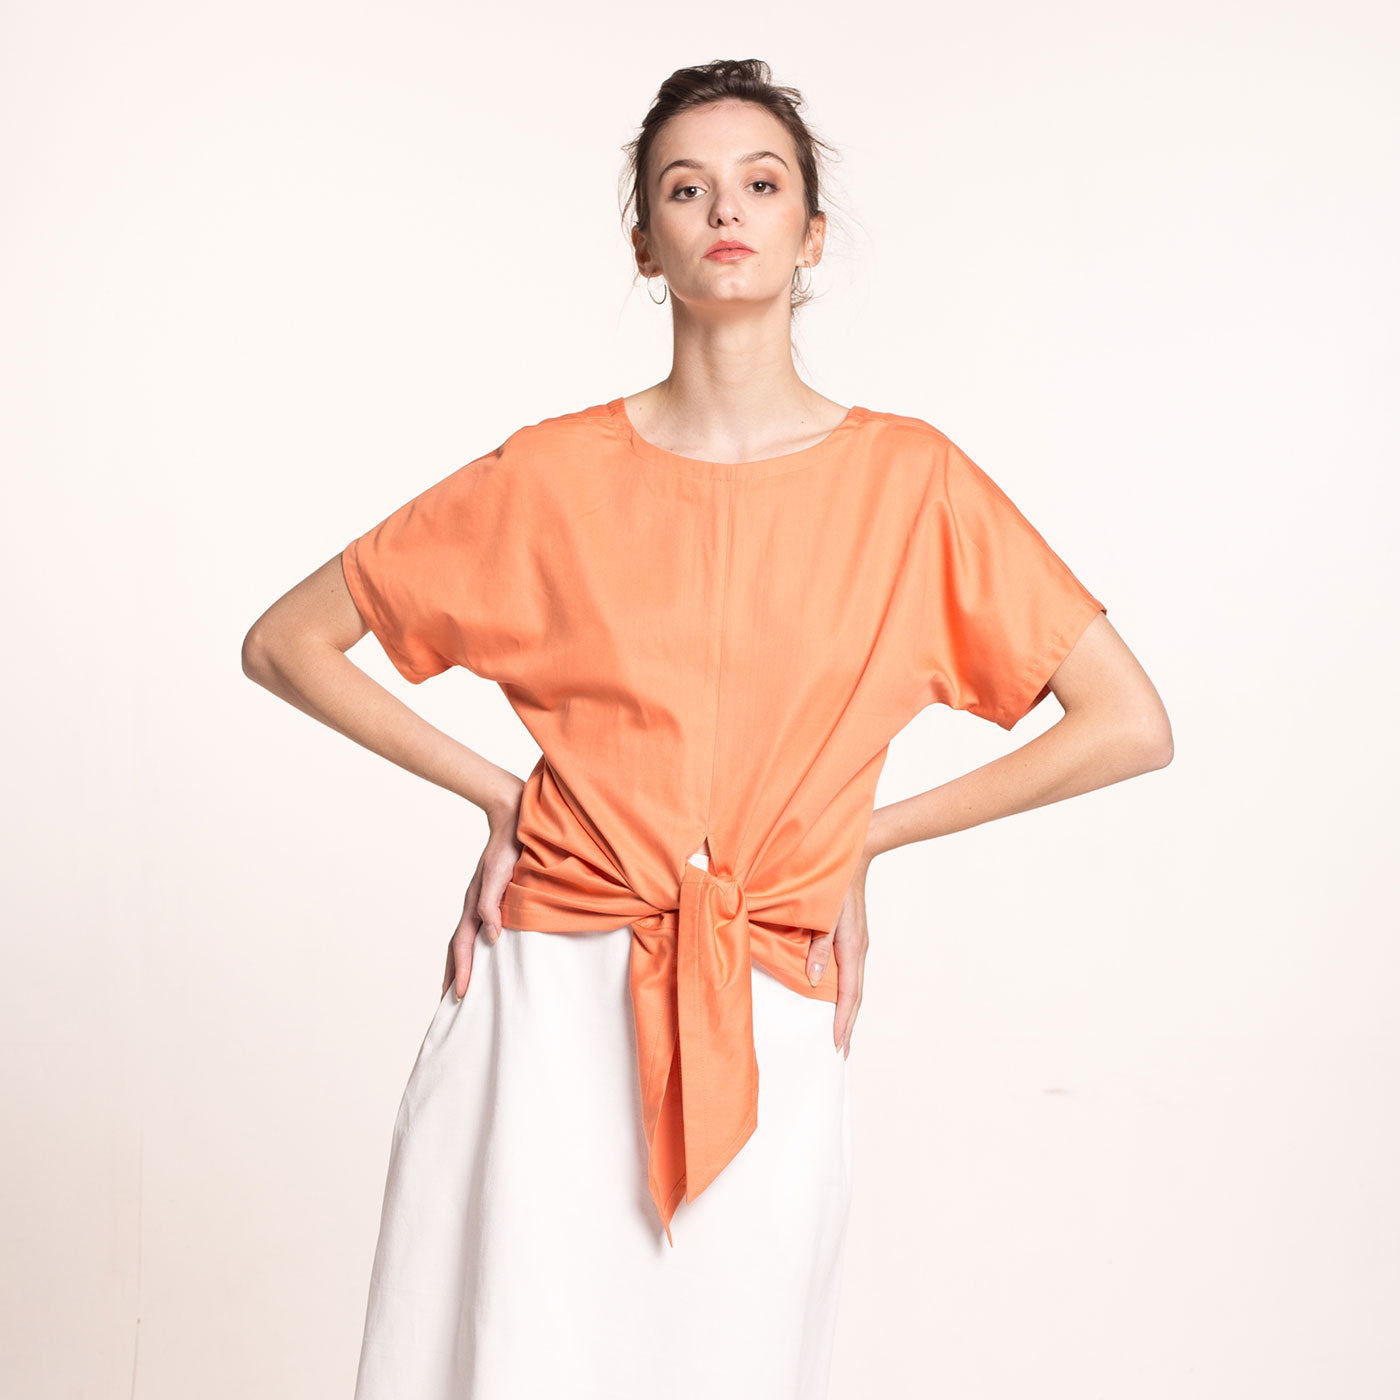 e model wears an orange, front tie, sustainable, organic cotton sateen top, with short sleeves and round neckline, front view.